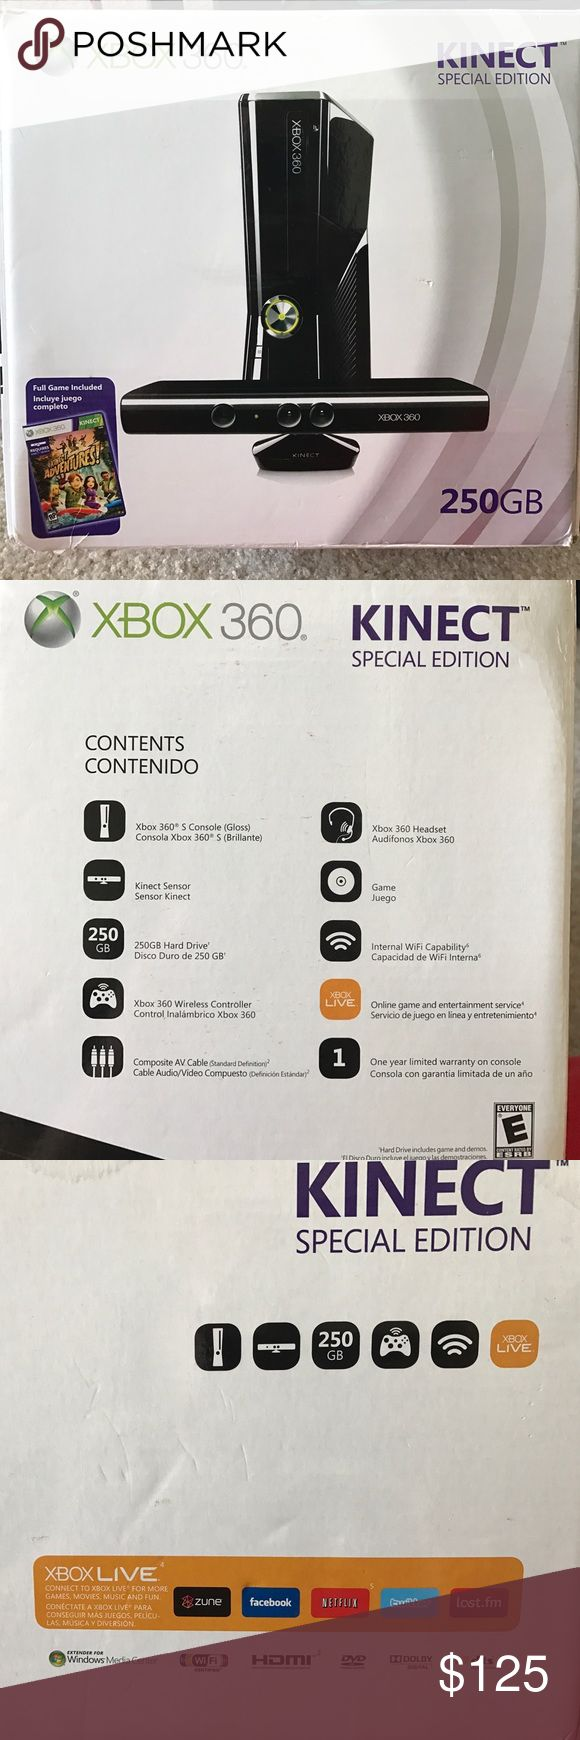 🎮 XBOX 360- KINECT Special Edition/WIFI  🎮 This XBOX is in great shape! Shiny Black color. Only used a couple of times! Headset and game are not included. It does have TWO wireless controllers and a charging dock for the controllers. HDMI cable is also included. The extra remote, charging dock and HDMI were purchased separately. XBOX LIVE compatible. Other